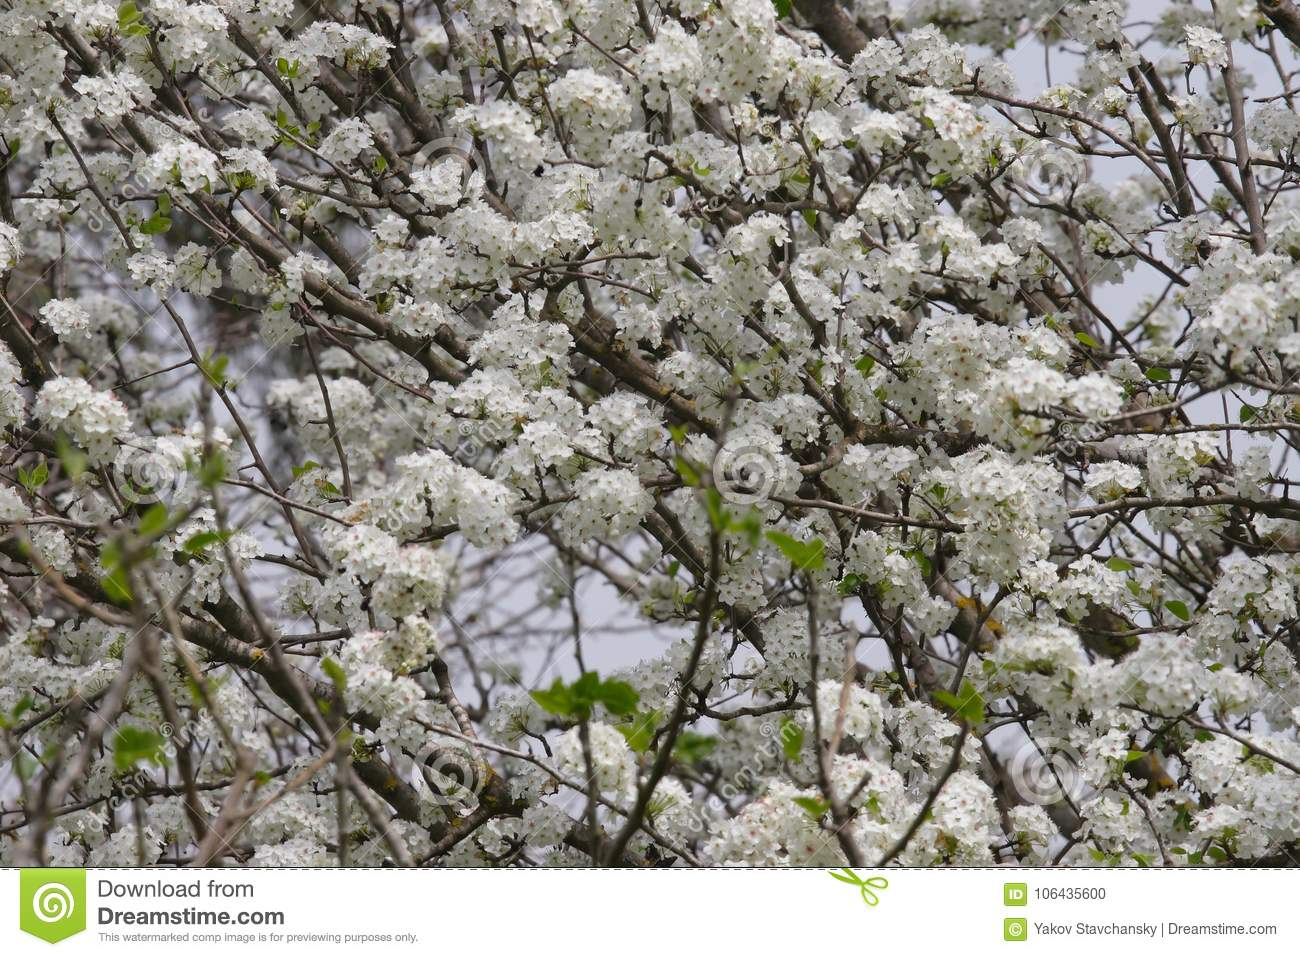 Tree blooms flowers stock photo image of glade grass 106435600 tree blooms beautiful white flowers mightylinksfo